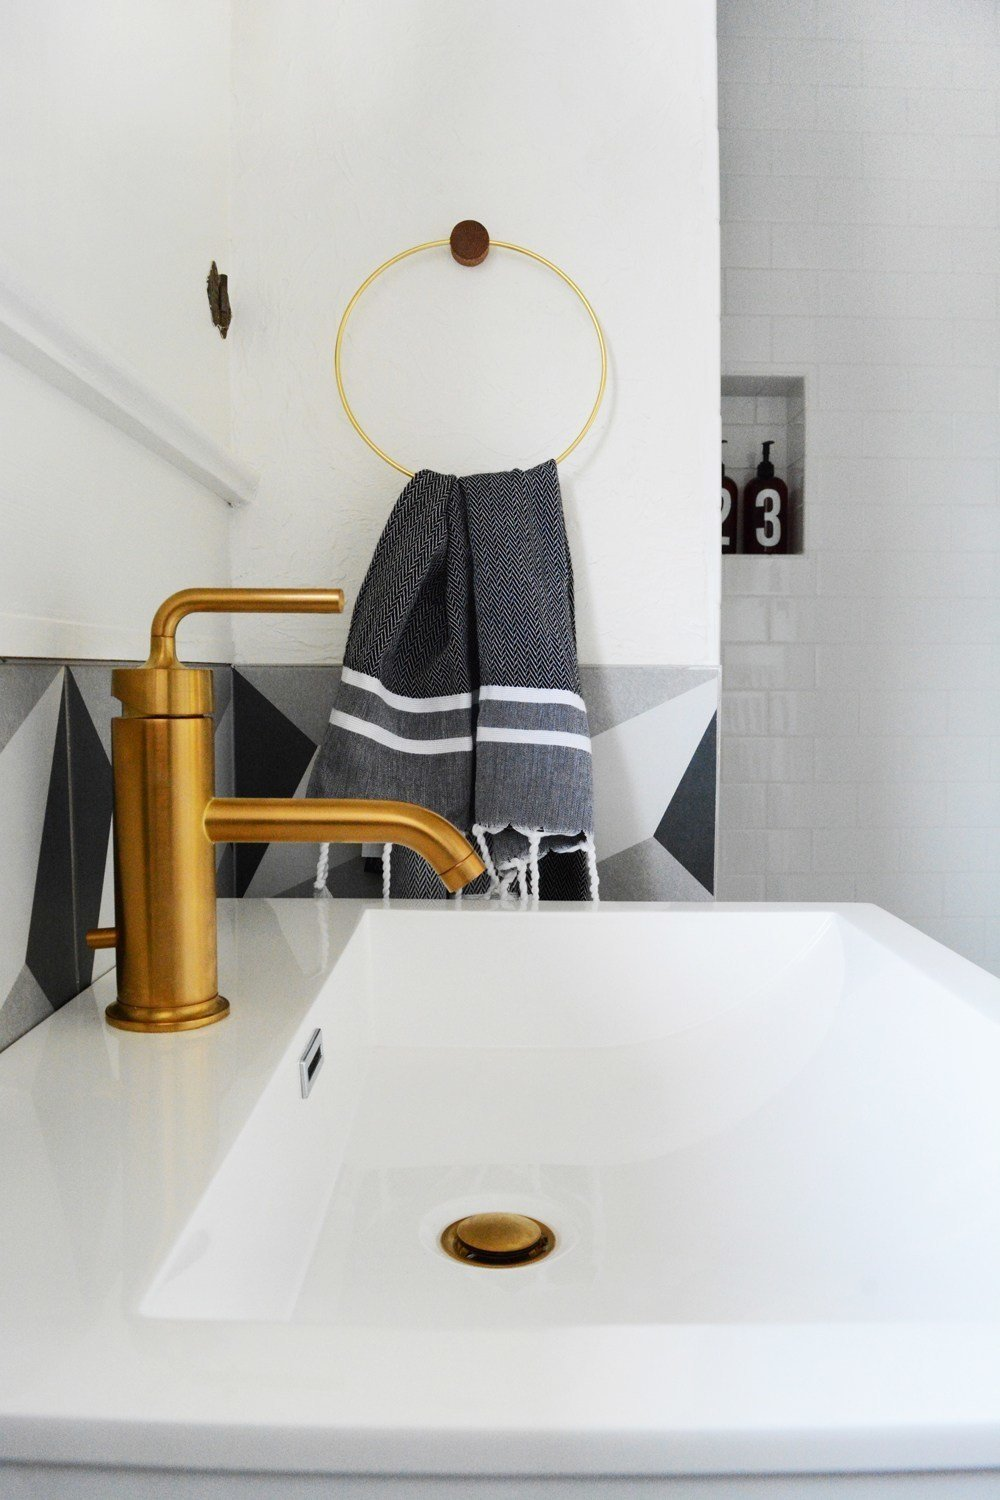 Photo 10 of 10 in A Small 1920s Guesthouse Bathroom Gets A Modern Makeover